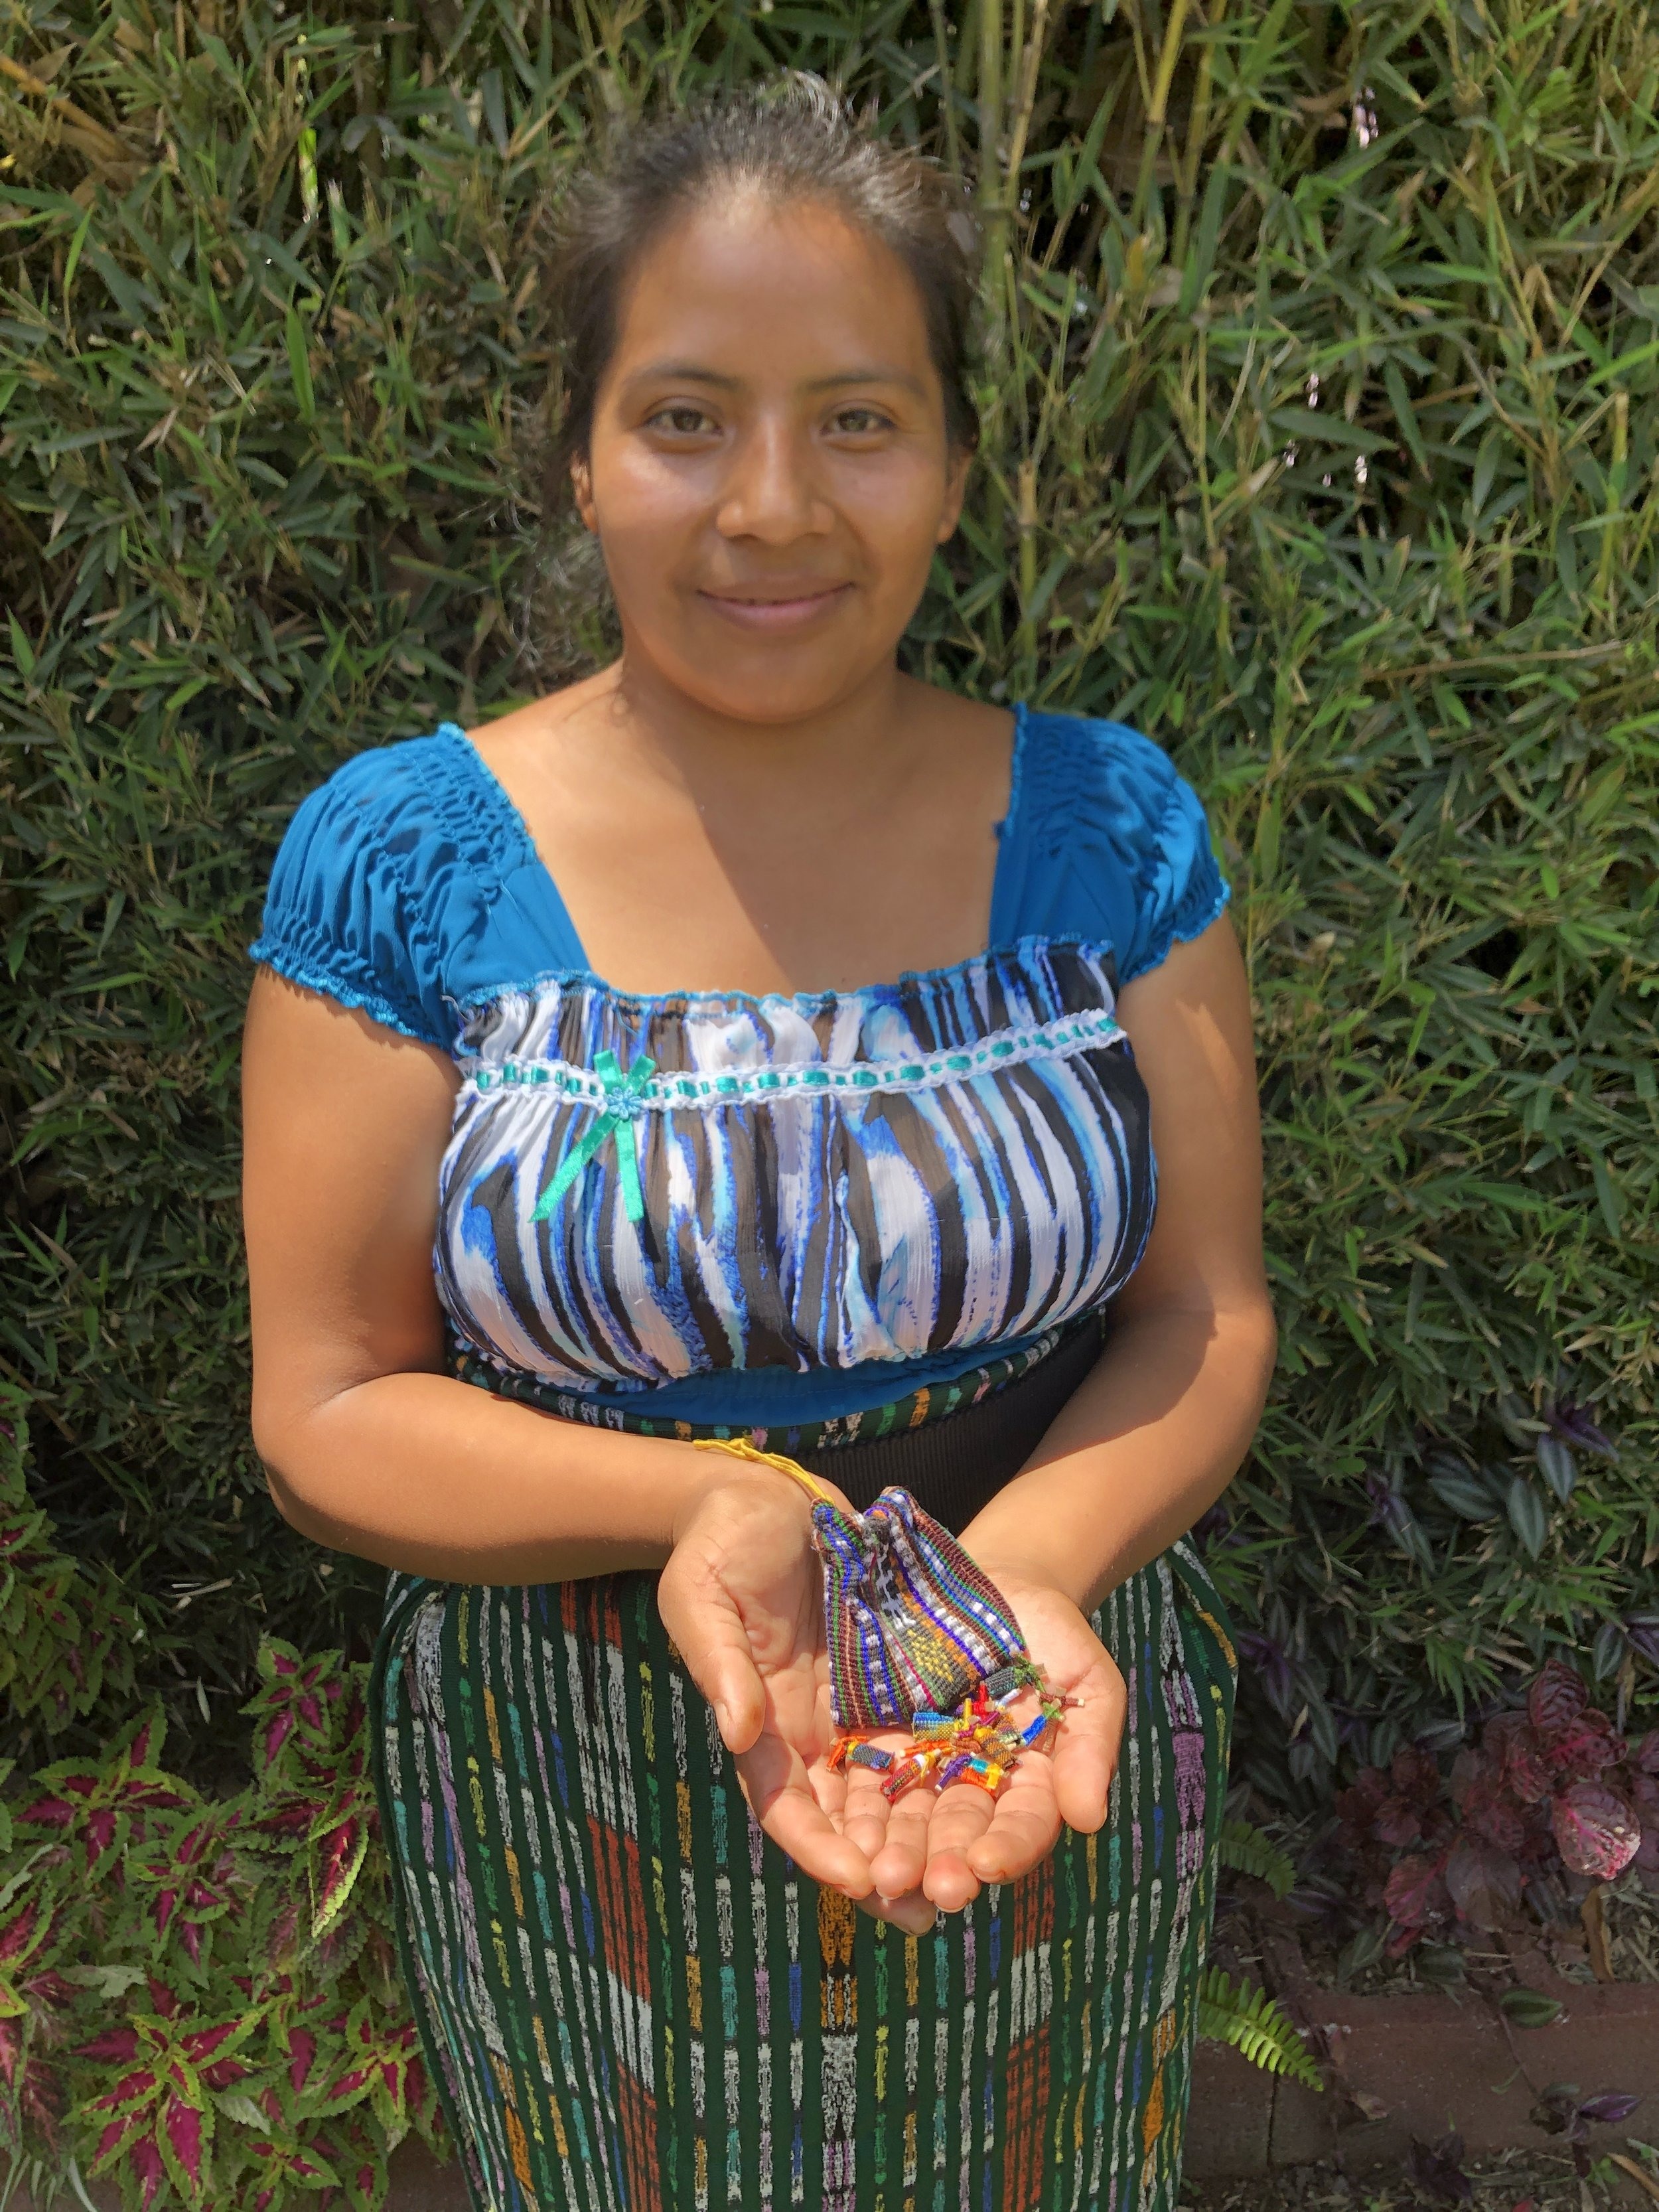 Mirian Zet - San Jorge La Laguna, Sololá - Friendship Bridge's client for 9 loan cycles.Mirian has contributed not only these authentic worry dolls to our collection, but also wonderful boho earrings, pompom necklaces, wire bracelets and an eyeglasses chain. Many ladies in Mirian's town are skilled bead artisans, and Mirian is no exception. Her persistence to create unique new products makes her a key participant of our Artisan Program.